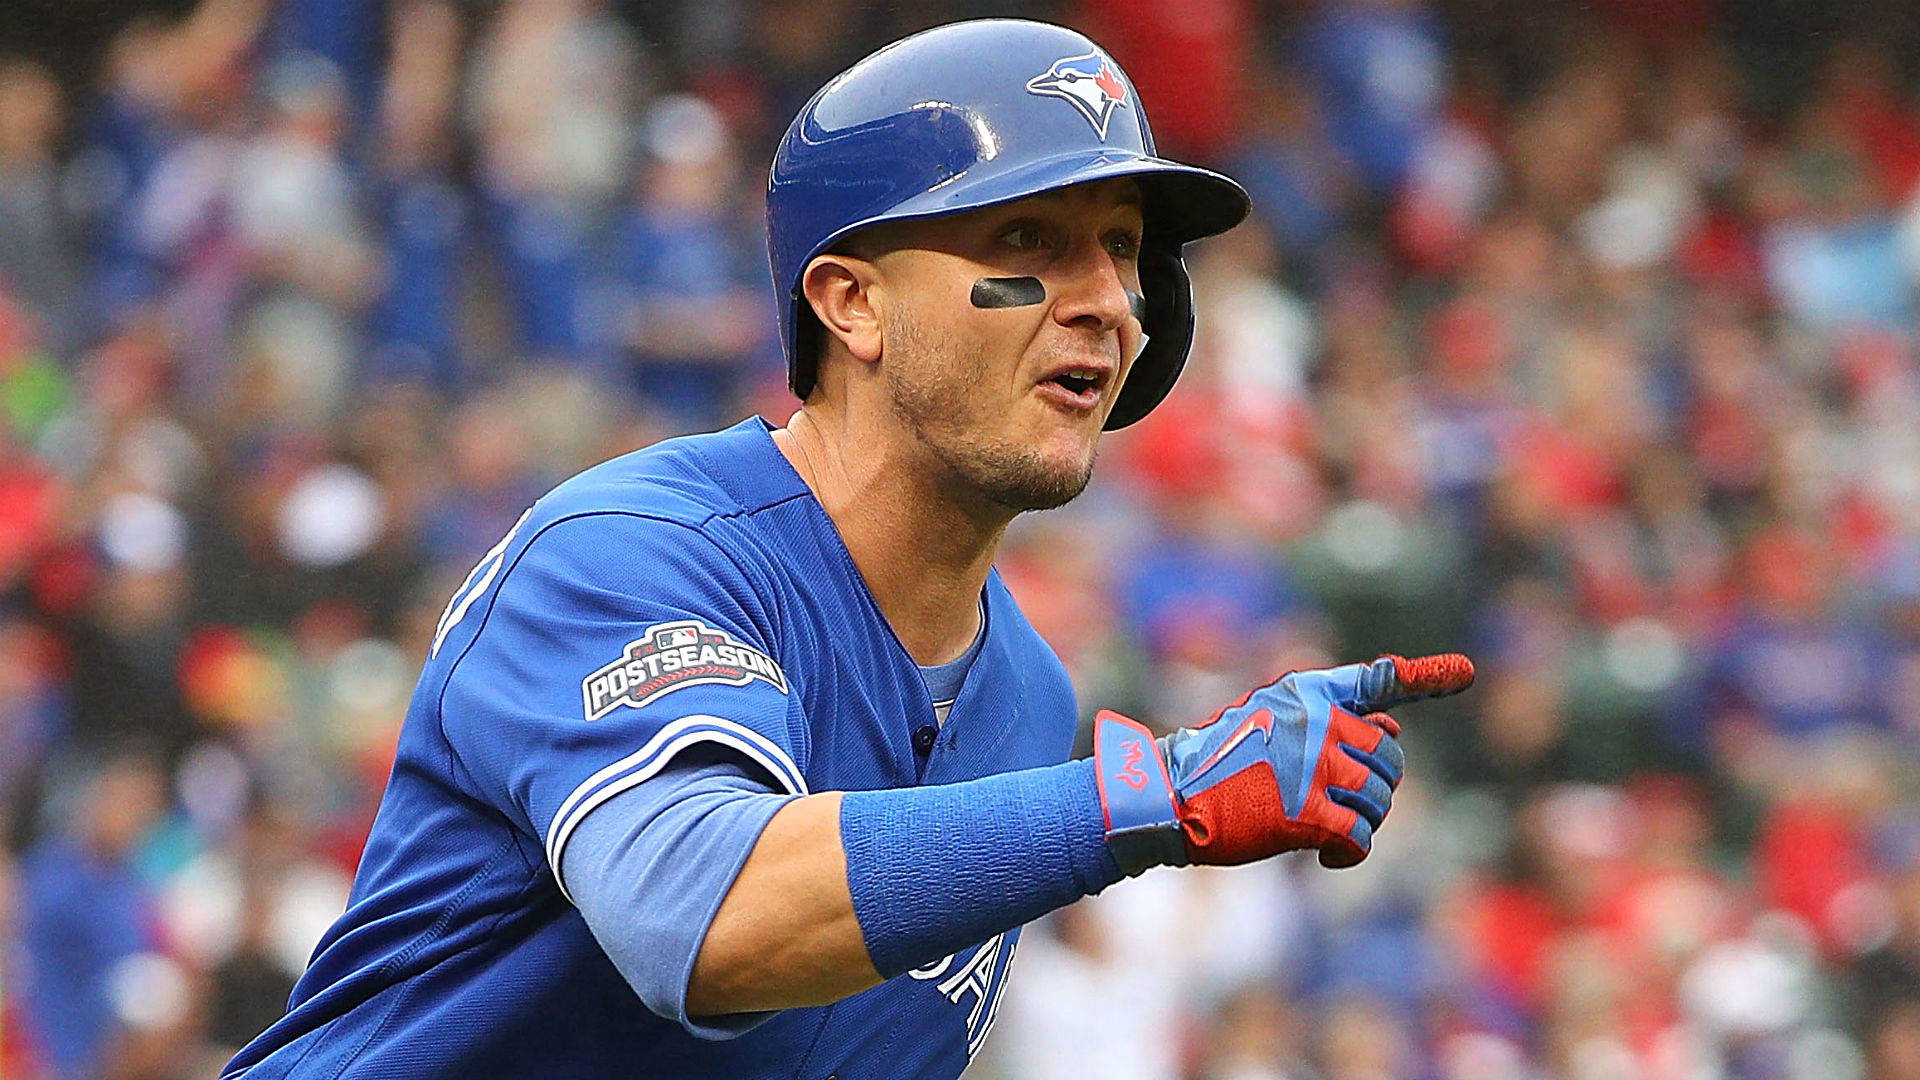 Troy Tulowitzki leaves game with injury after collision at first